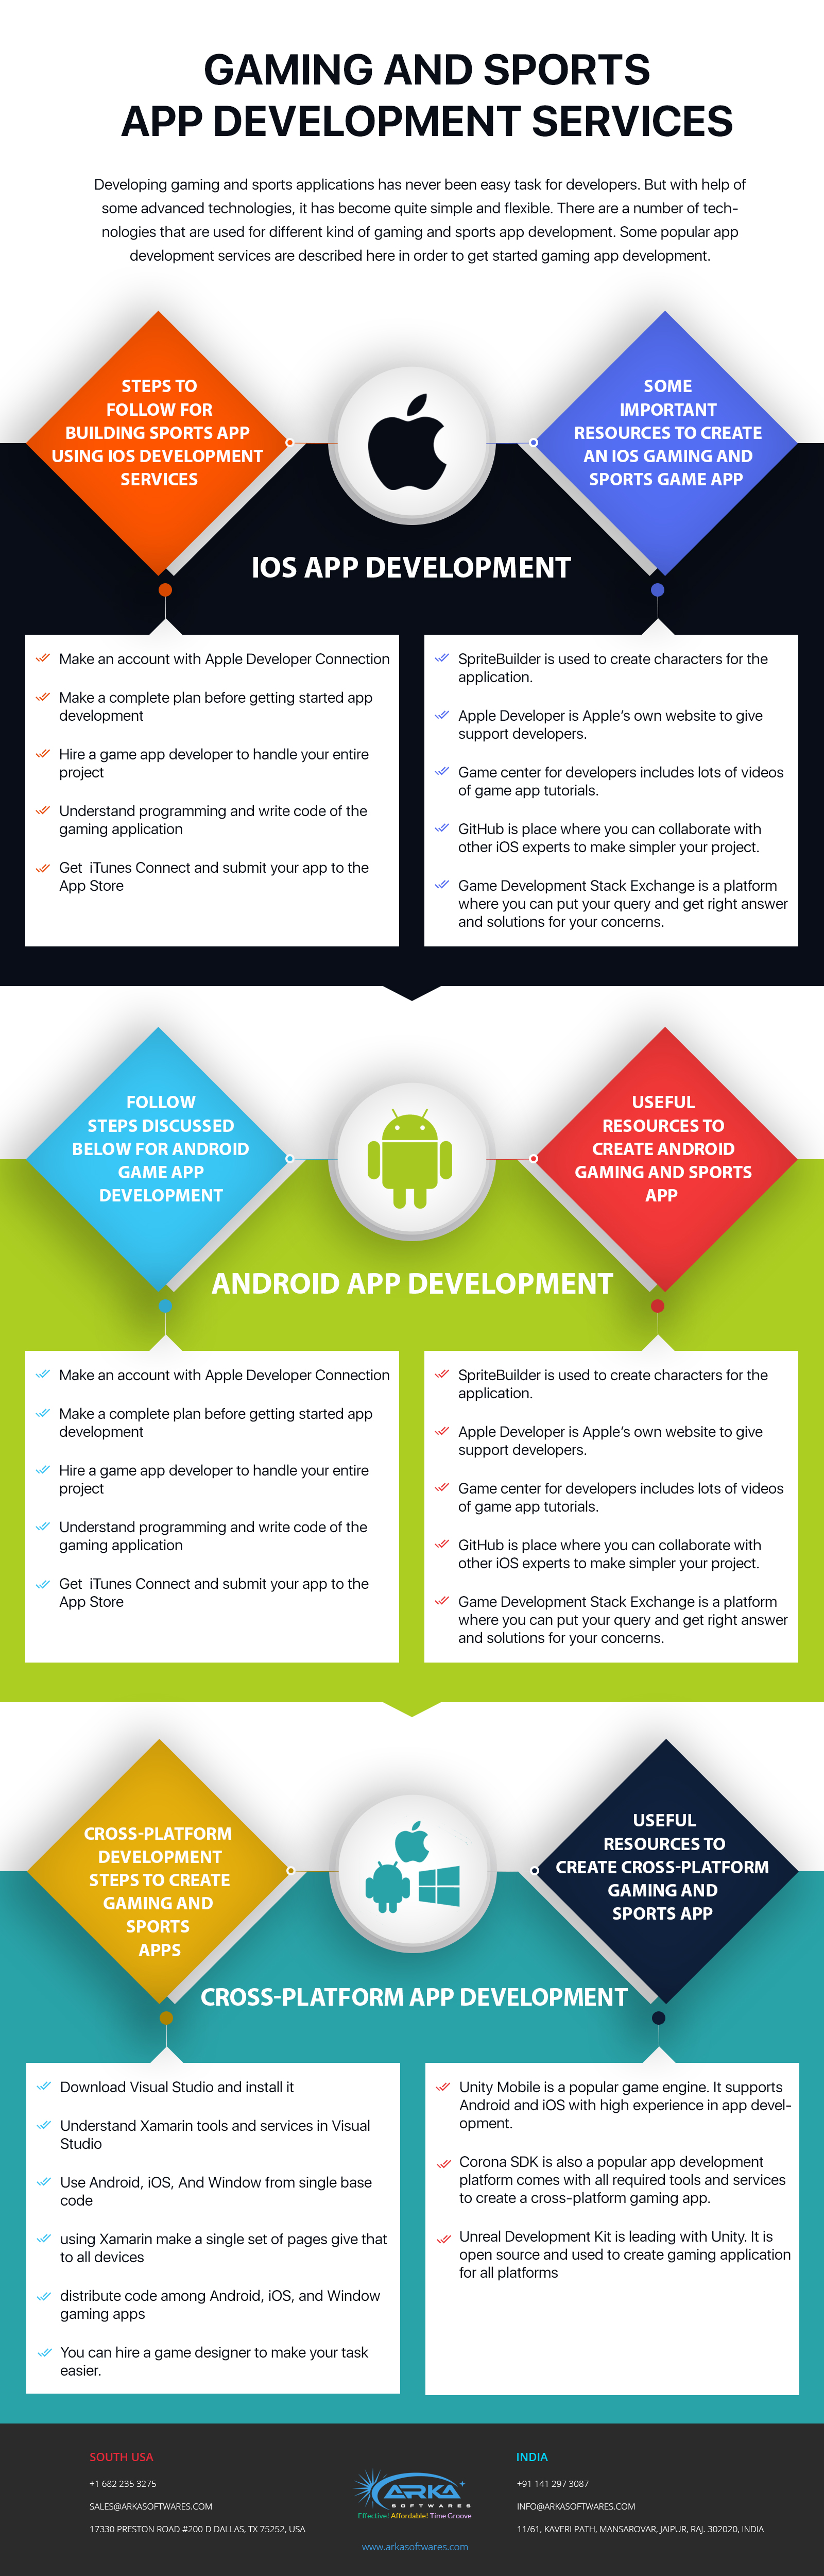 Games & Sports Apps Development [Infographic]